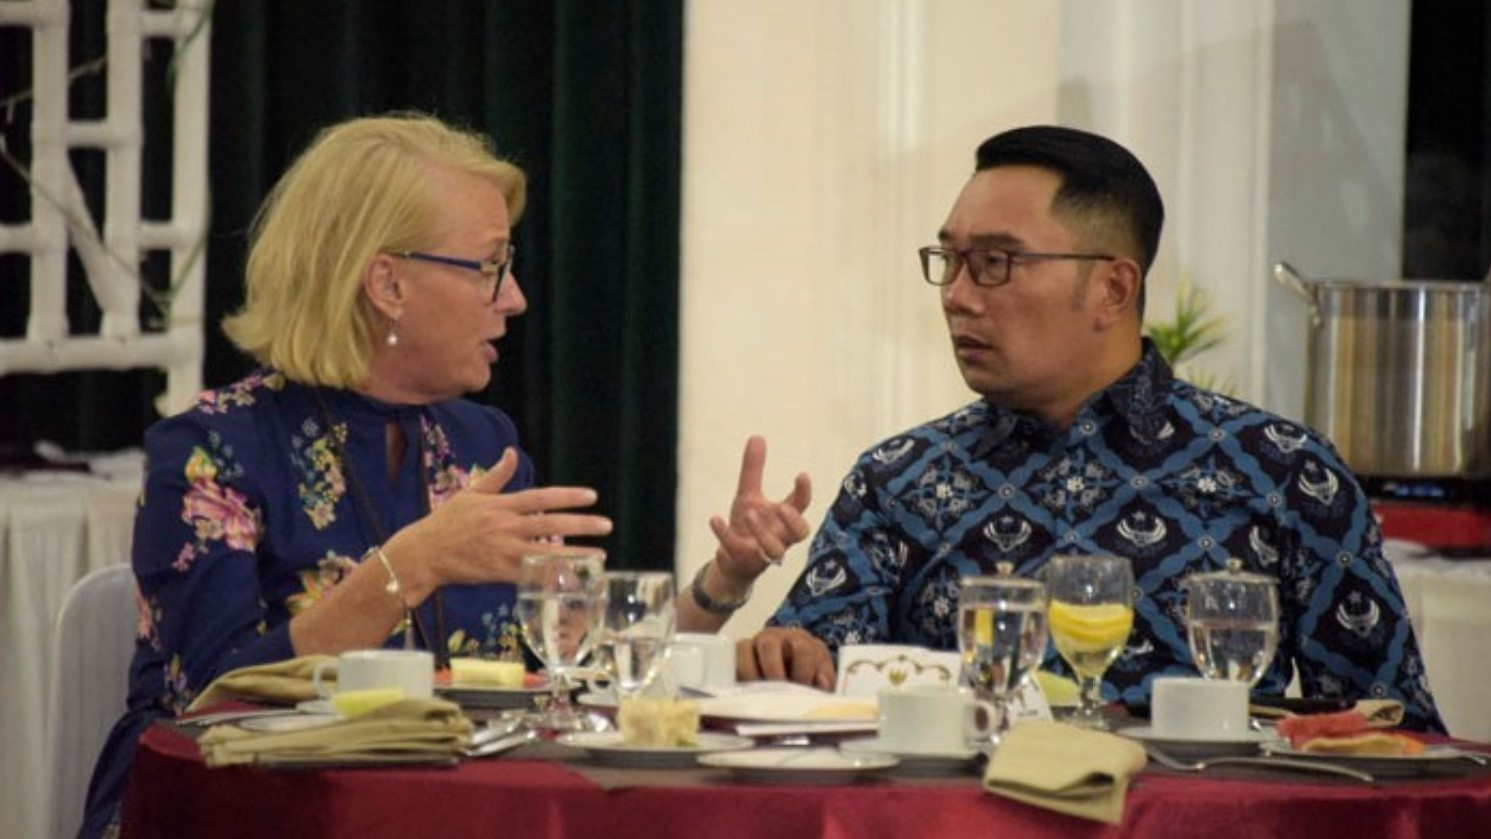 Shared values on show at Melbourne-West Java dialogue